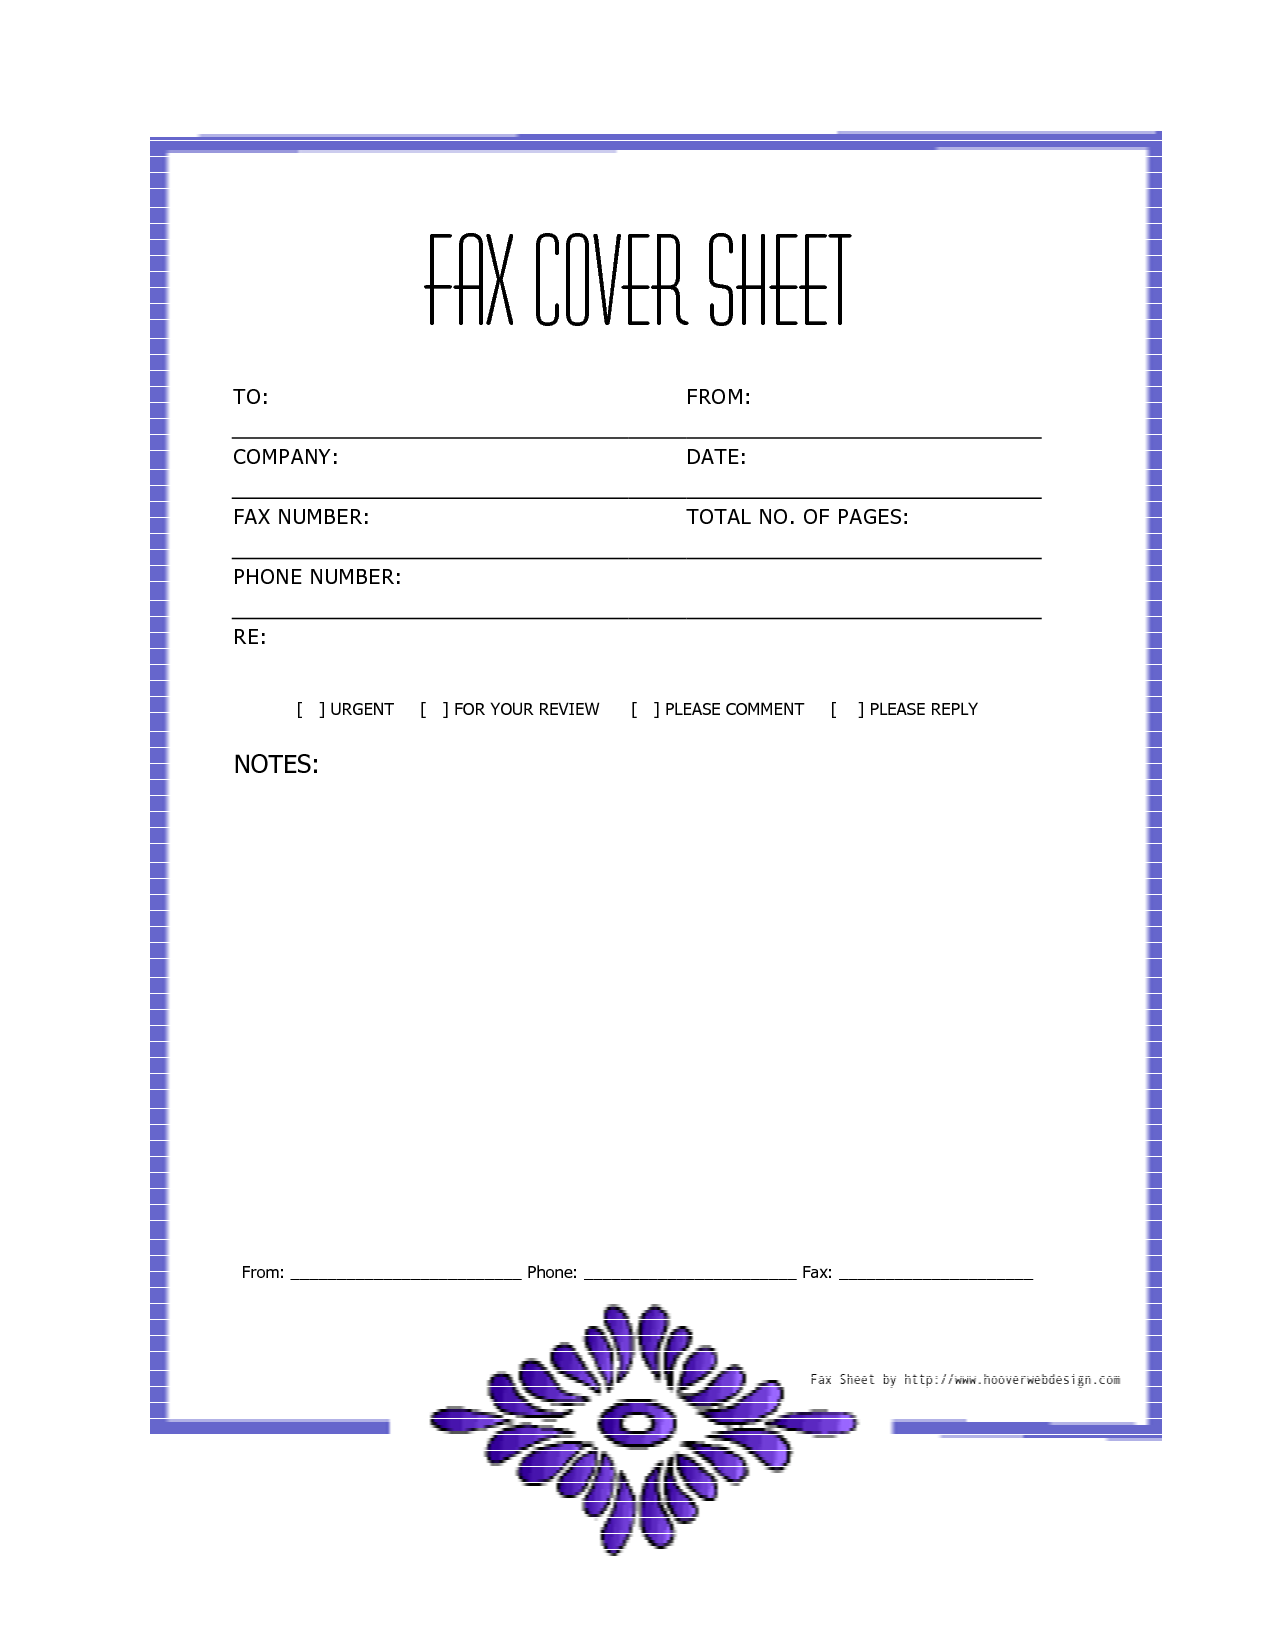 Free Downloads Fax Covers Sheets Free Printable Fax Cover Sheet - Fax cover letter template microsoft word